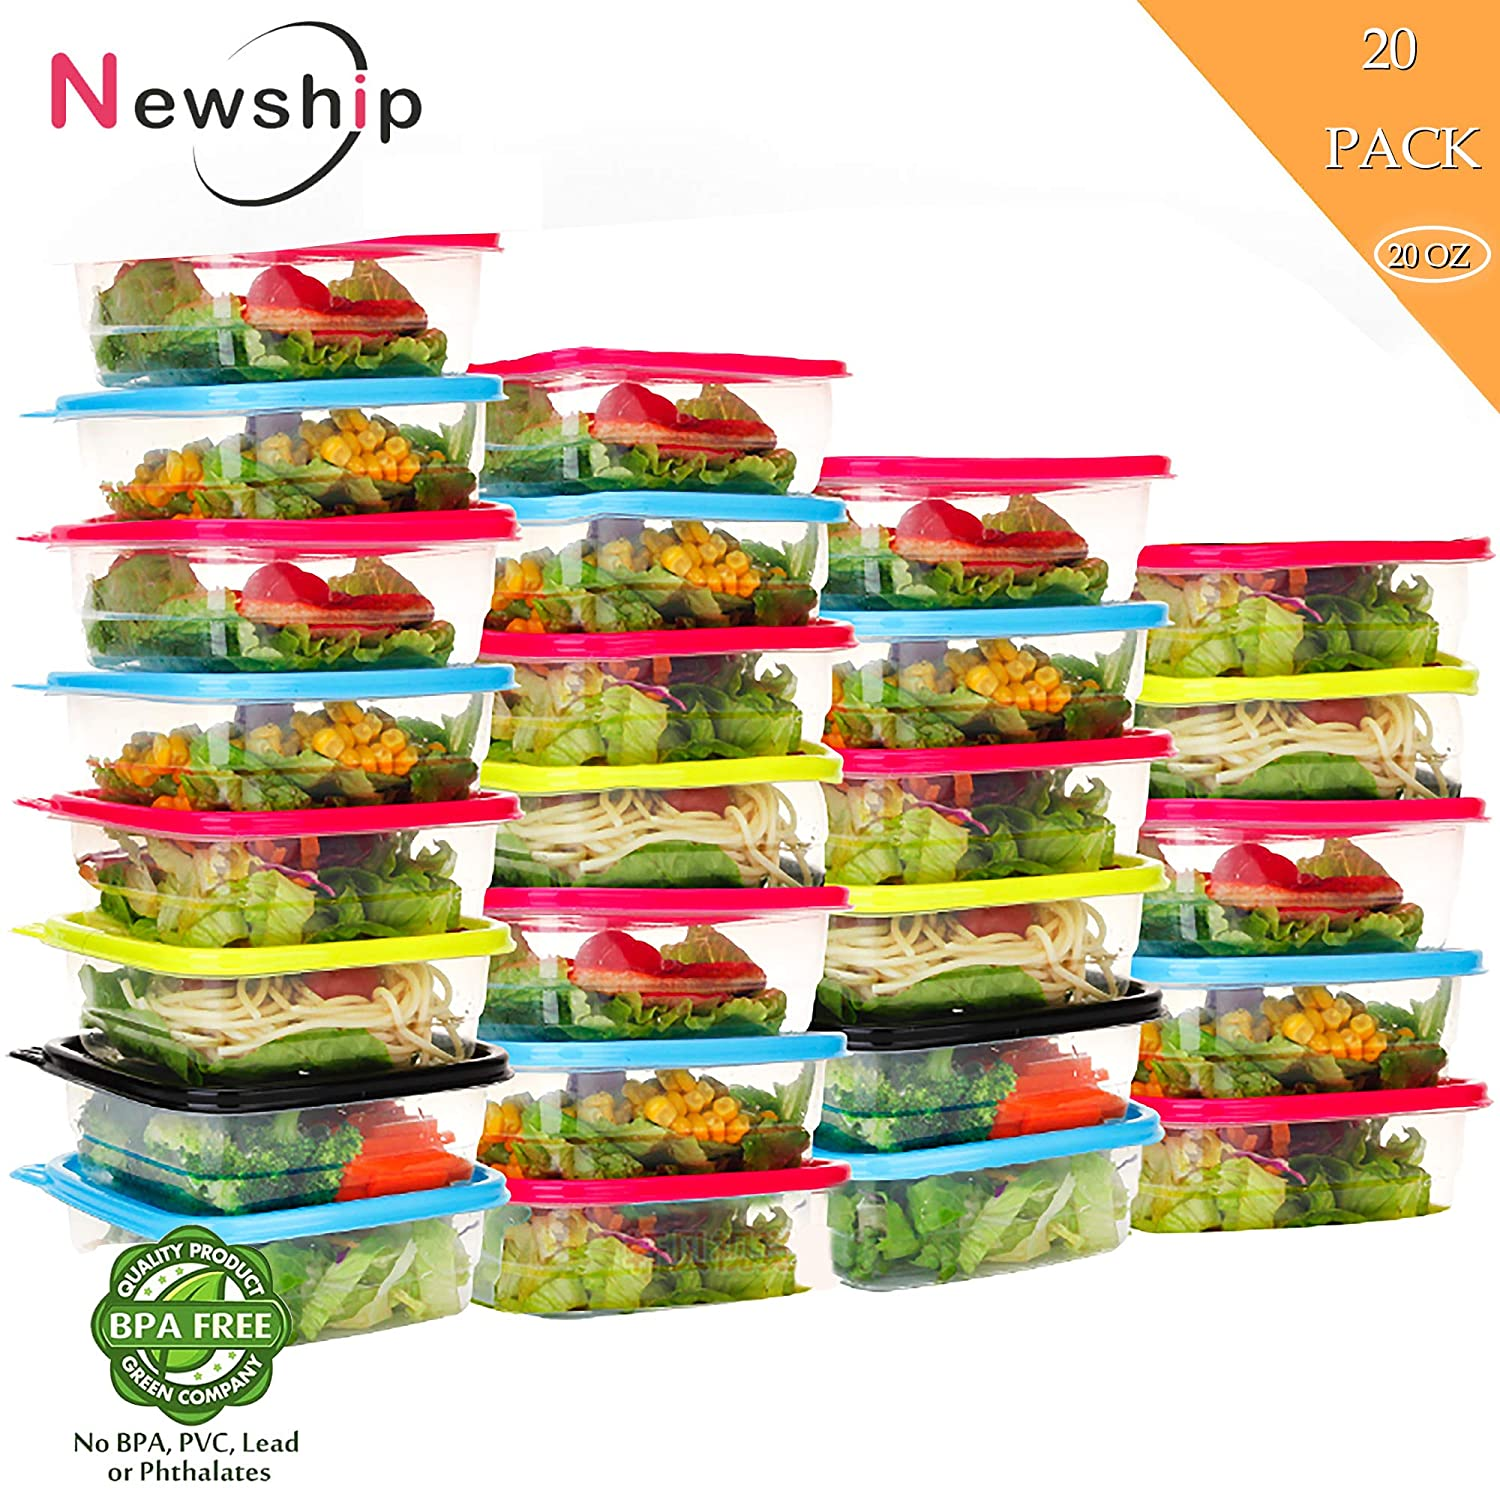 Freezer Storage Containers [20 Pack, 20oz]-Square Disposable Plastic Food Storage Containers with Lids,Stackable,Leakproof,Microwave,Dishwasher,Freezer Safe